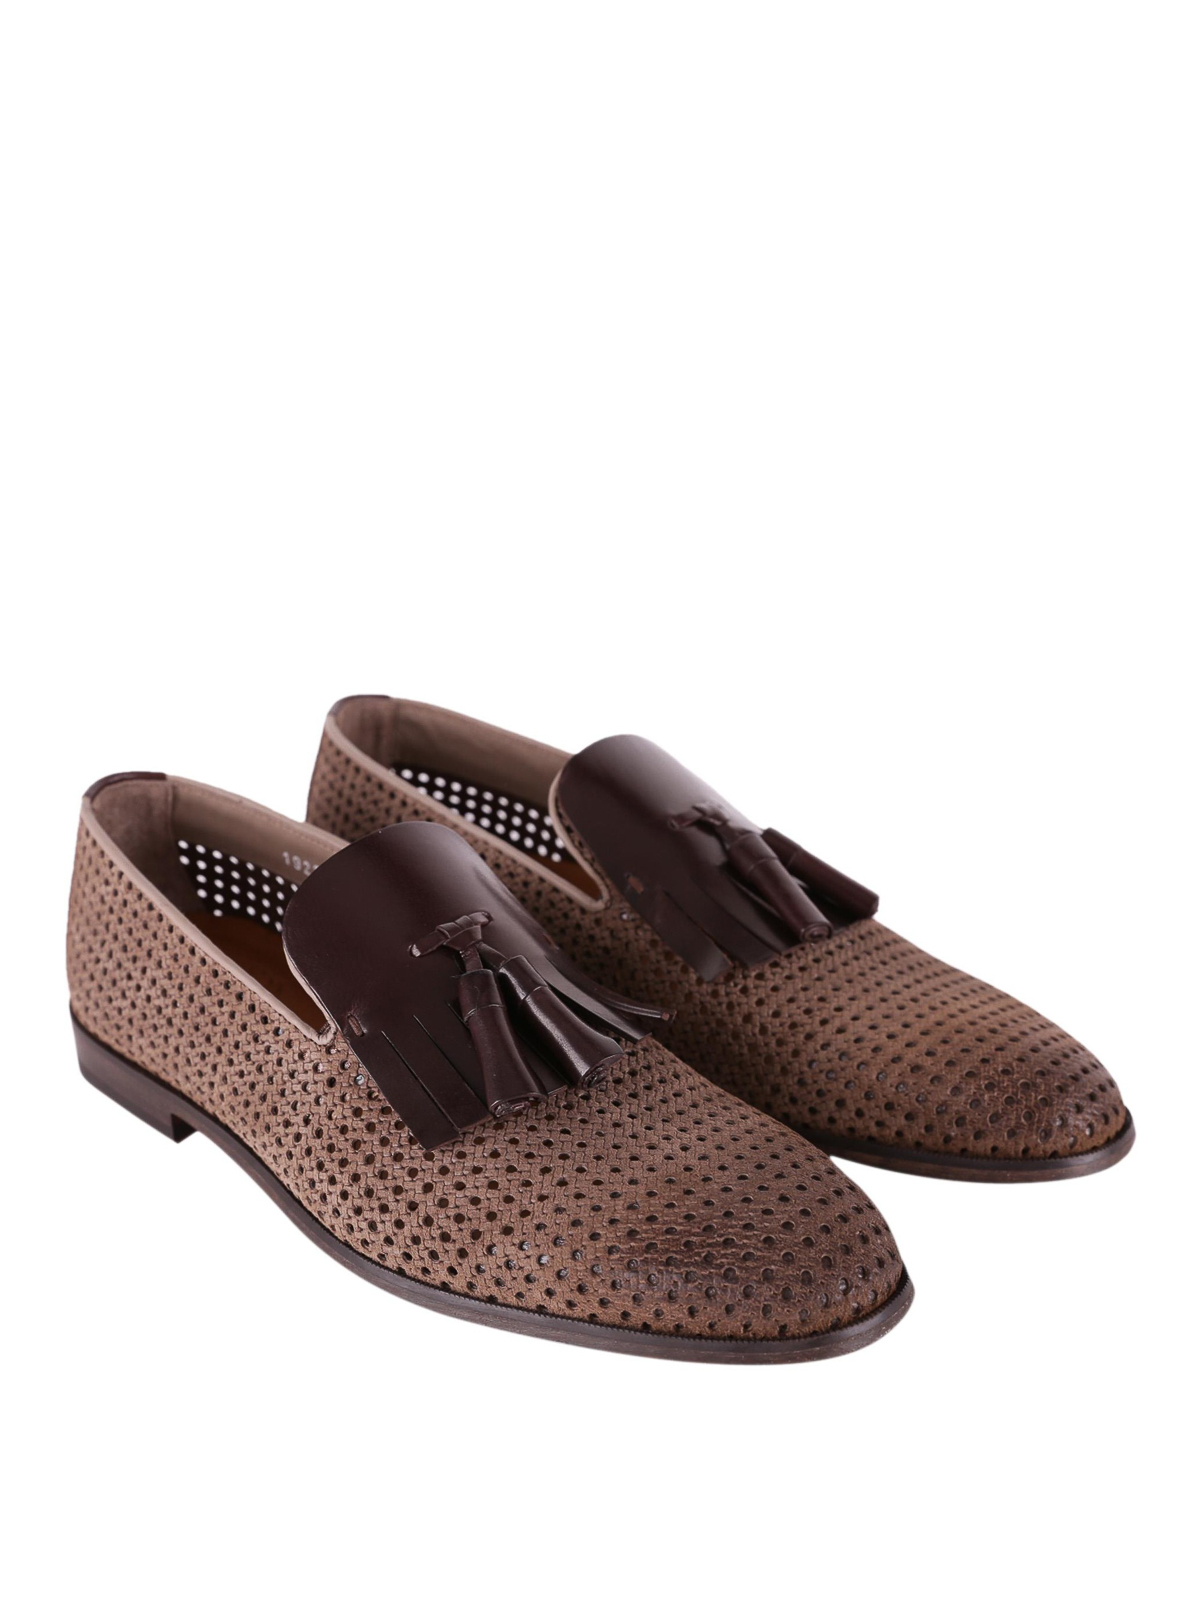 0f1f960754d Doucal s - Perforated leather loafers - Loafers   Slippers ...